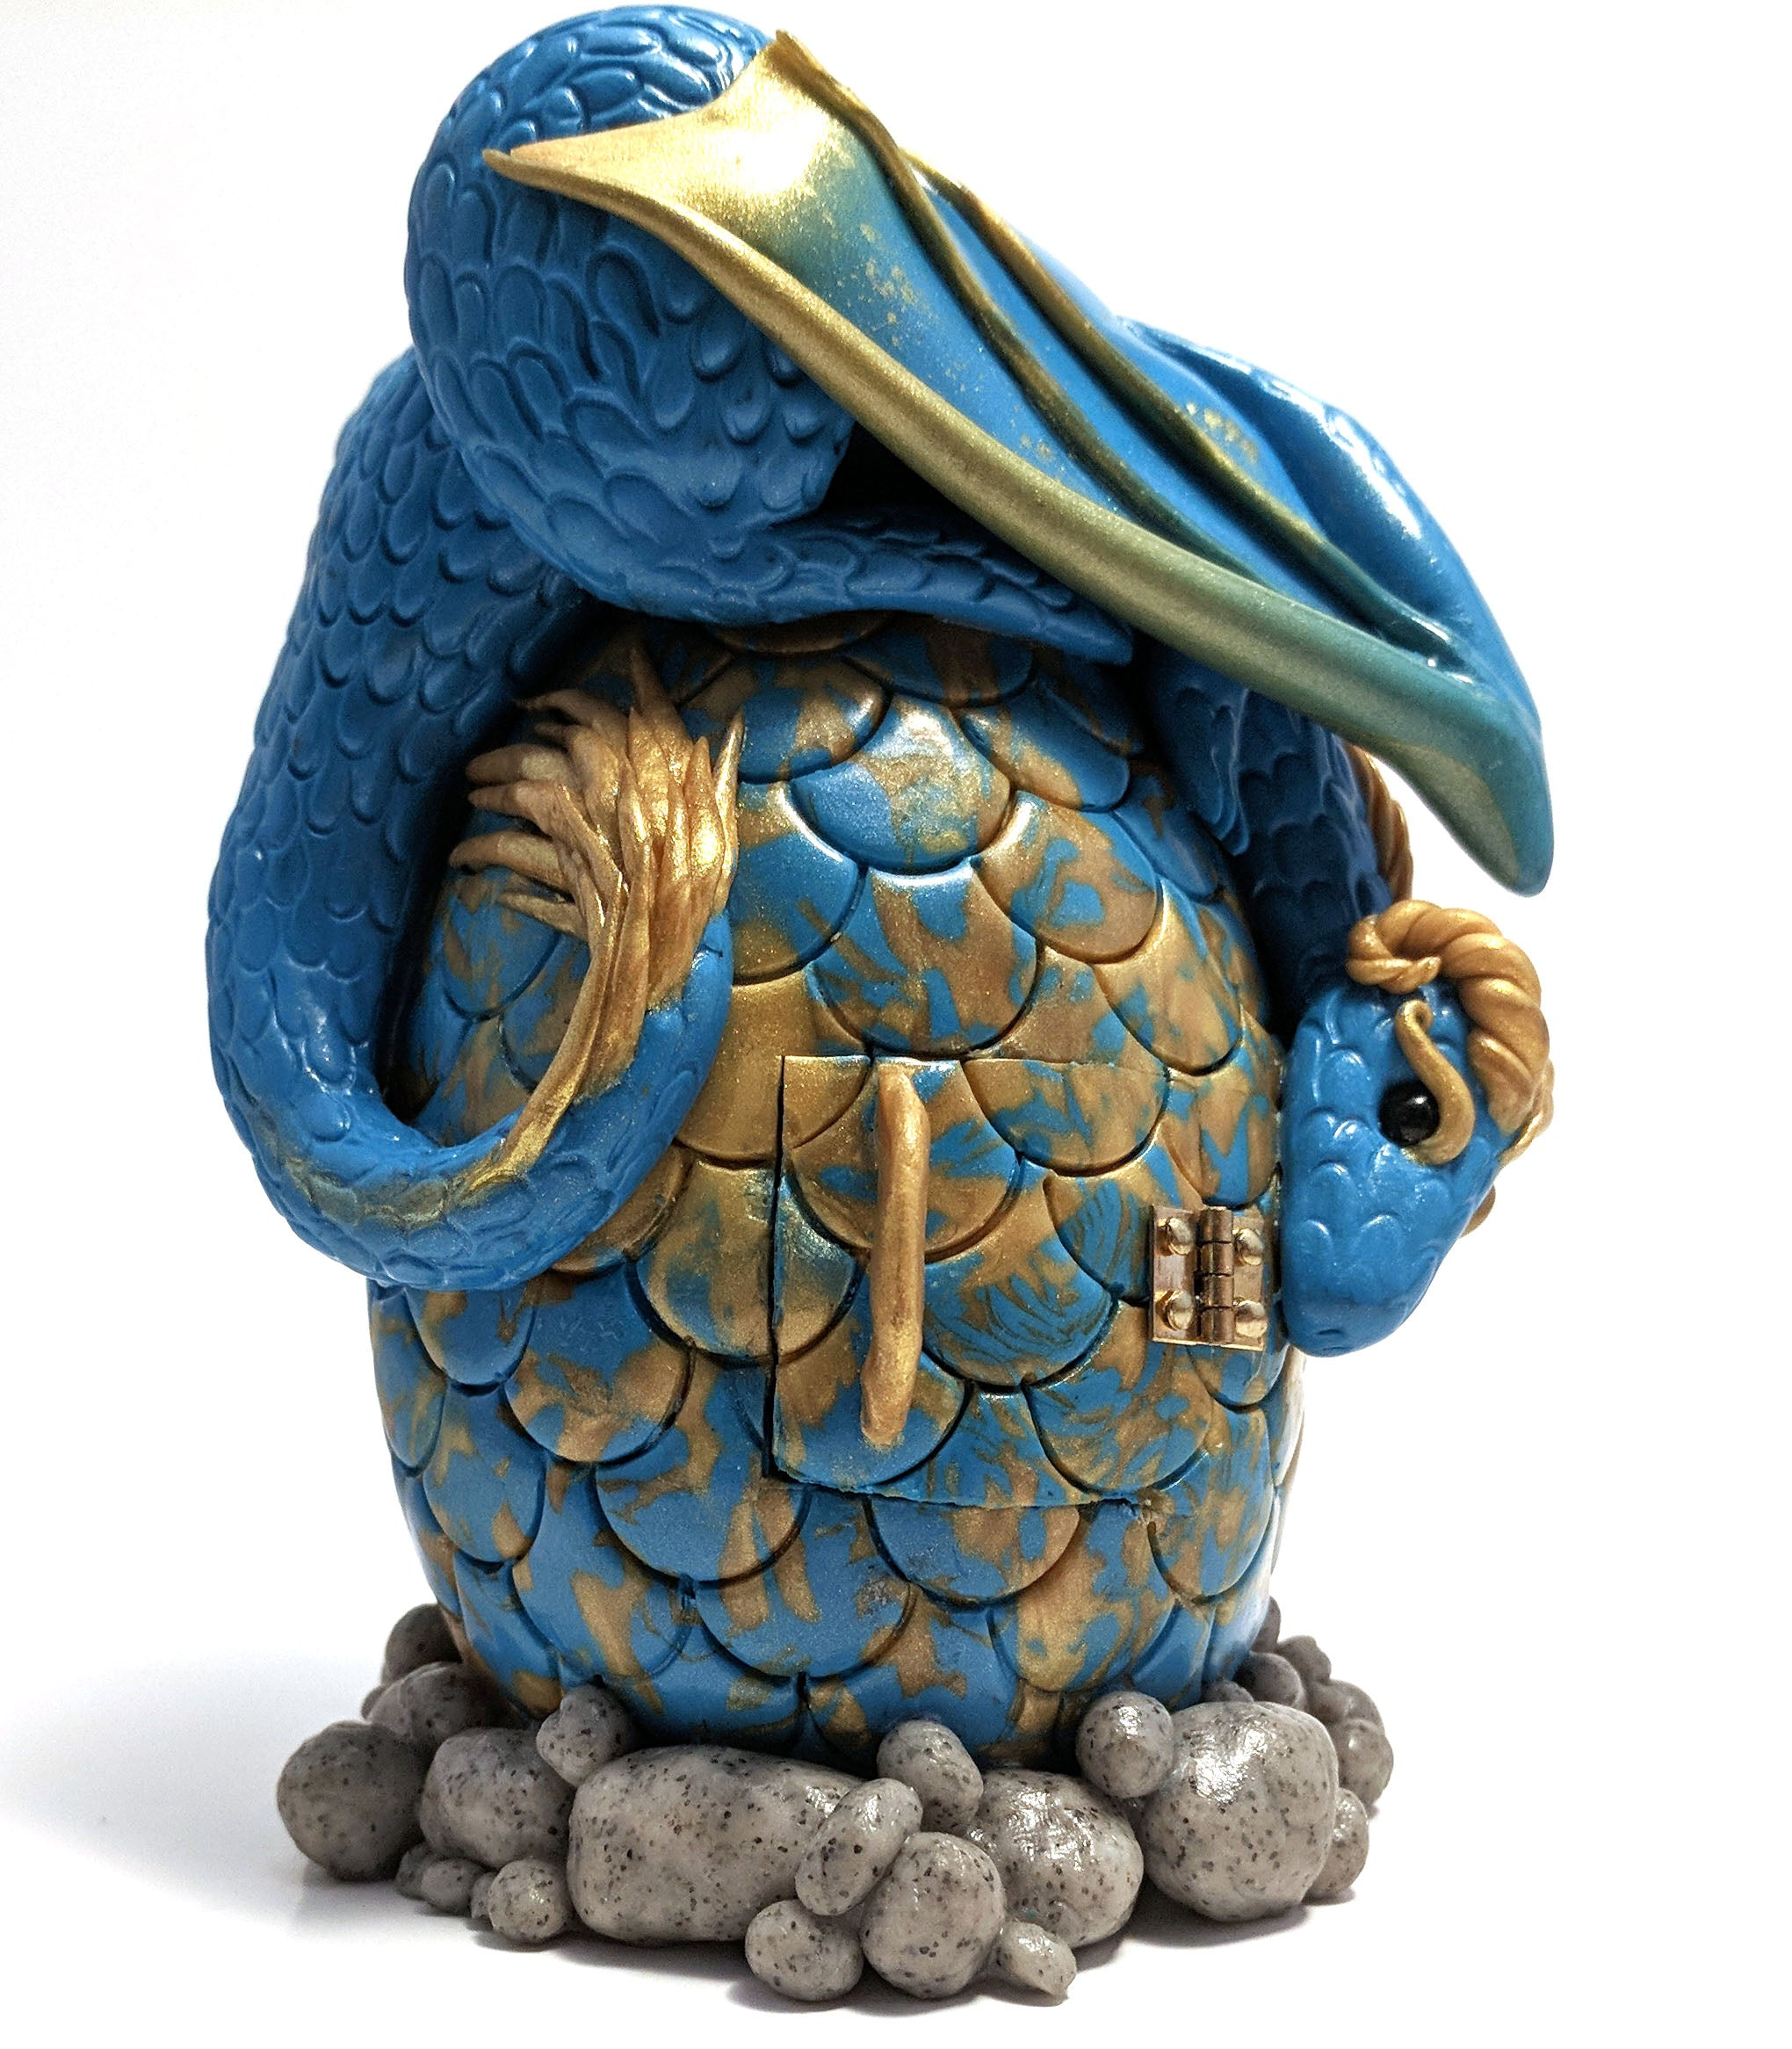 Blue and Gold Oasis Dragon Dice Set Holder by Hippocampus Creations